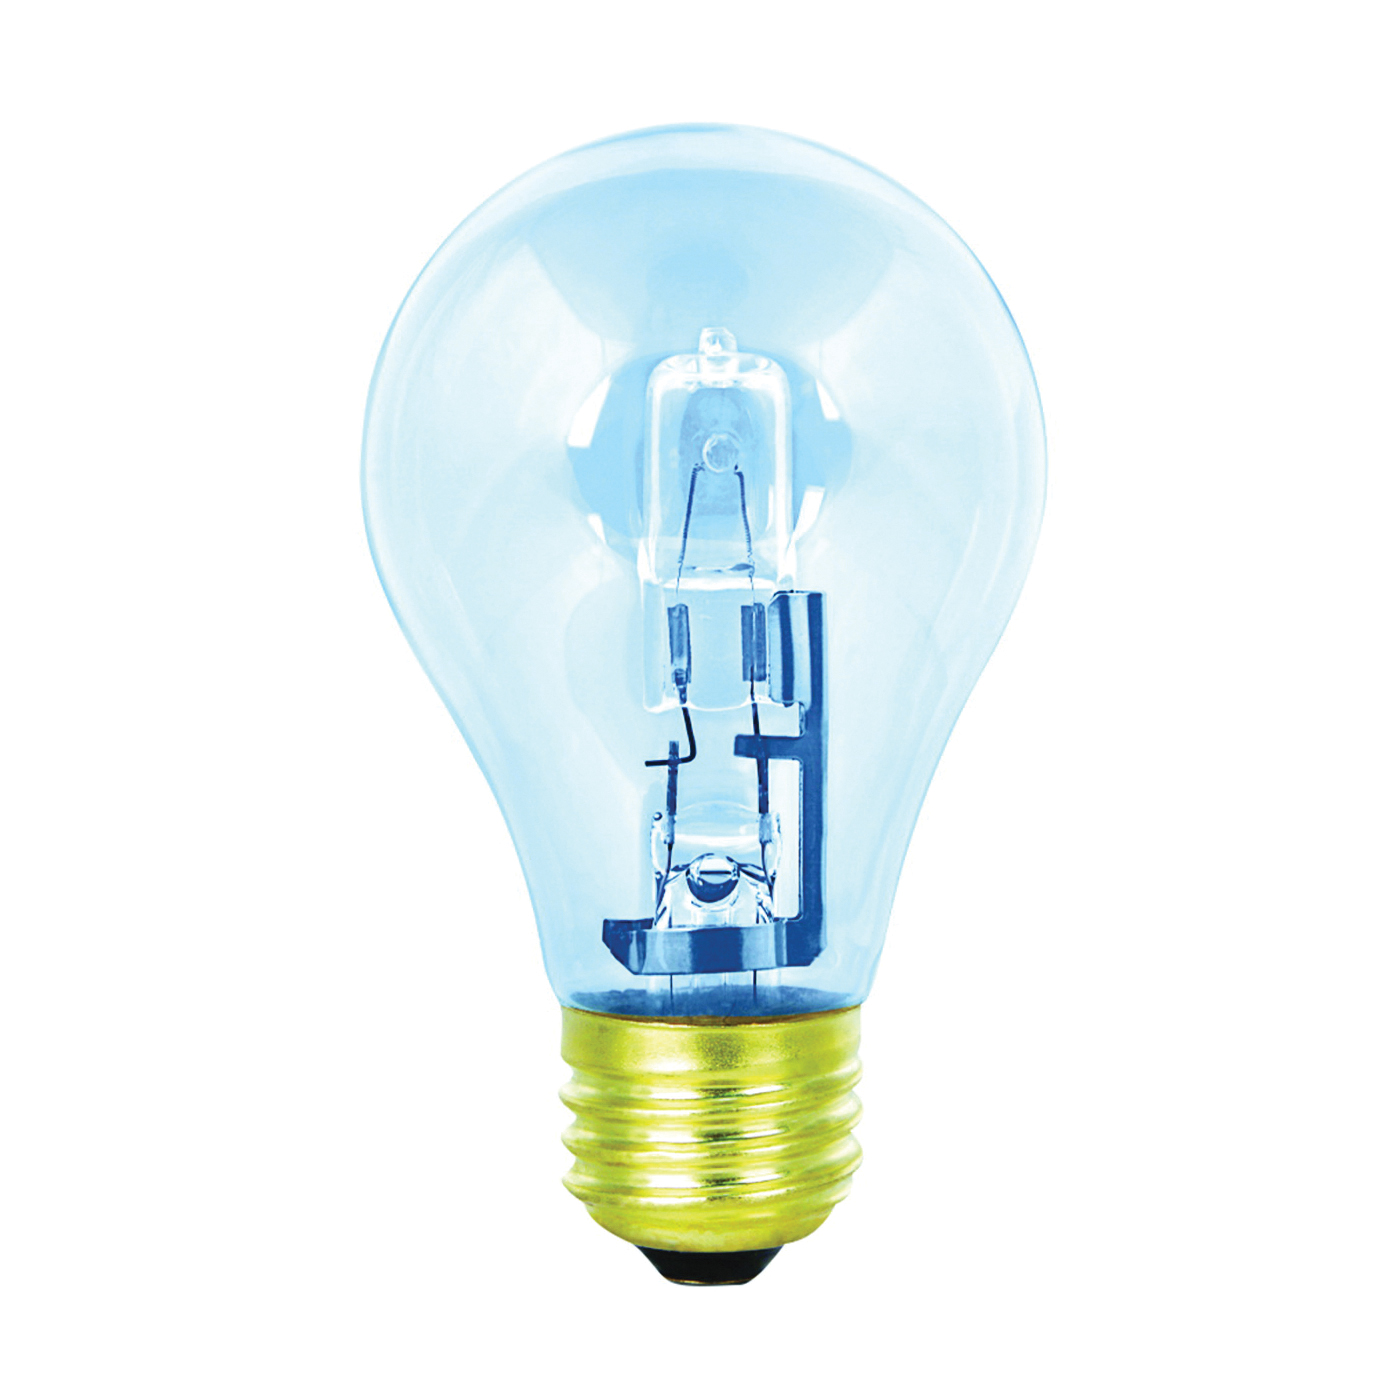 Picture of Feit Electric Q43A/CL/D/2 Halogen Lamp, 43 W, Medium E26 Lamp Base, A19 Lamp, Soft White Light, 565 Lumens